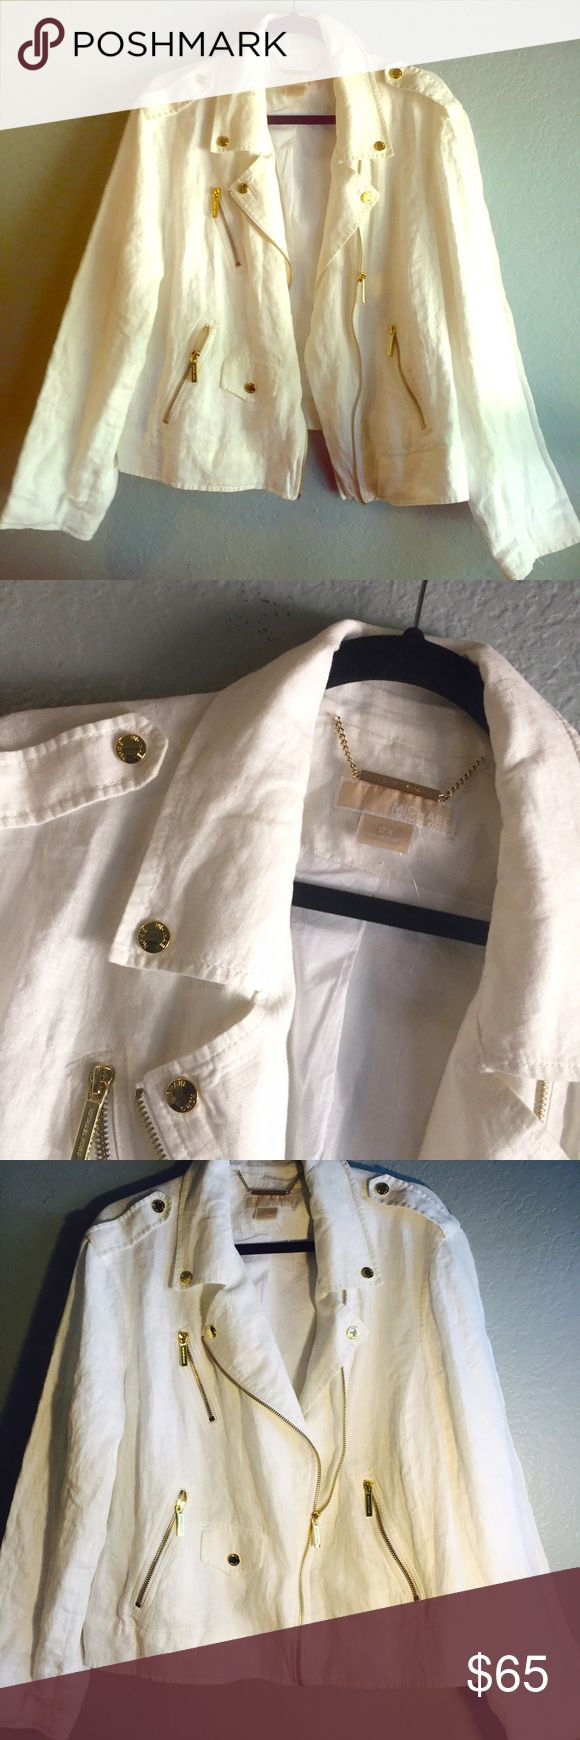 Michael Kors Jacket NWOT Off White Egg shell 100% Linen jacket. Gold toned hardware with a zipper closure. Plus Michael Kors Jackets & Coats